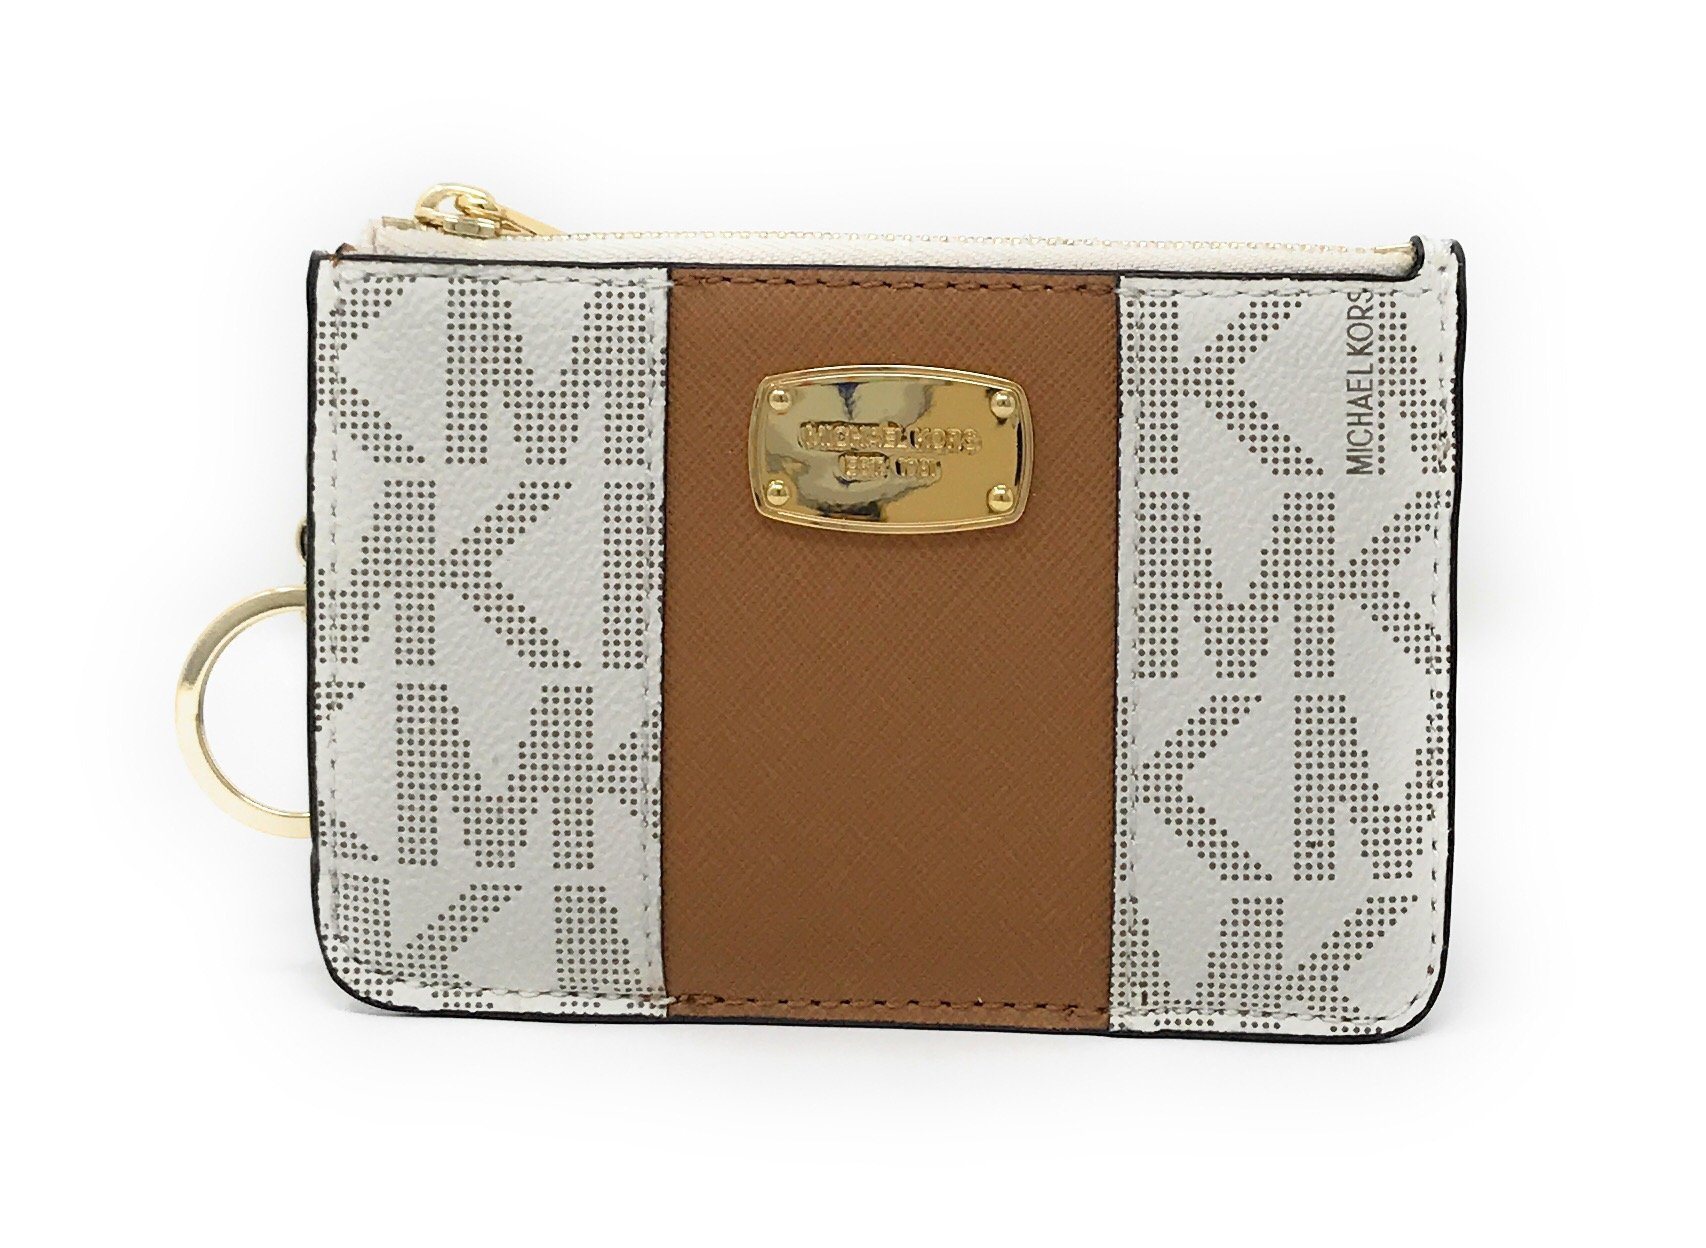 Michael Kors Center Stripe Small Top Zip Coin Pouch Card Case with ID Window, Vanilla/Acron